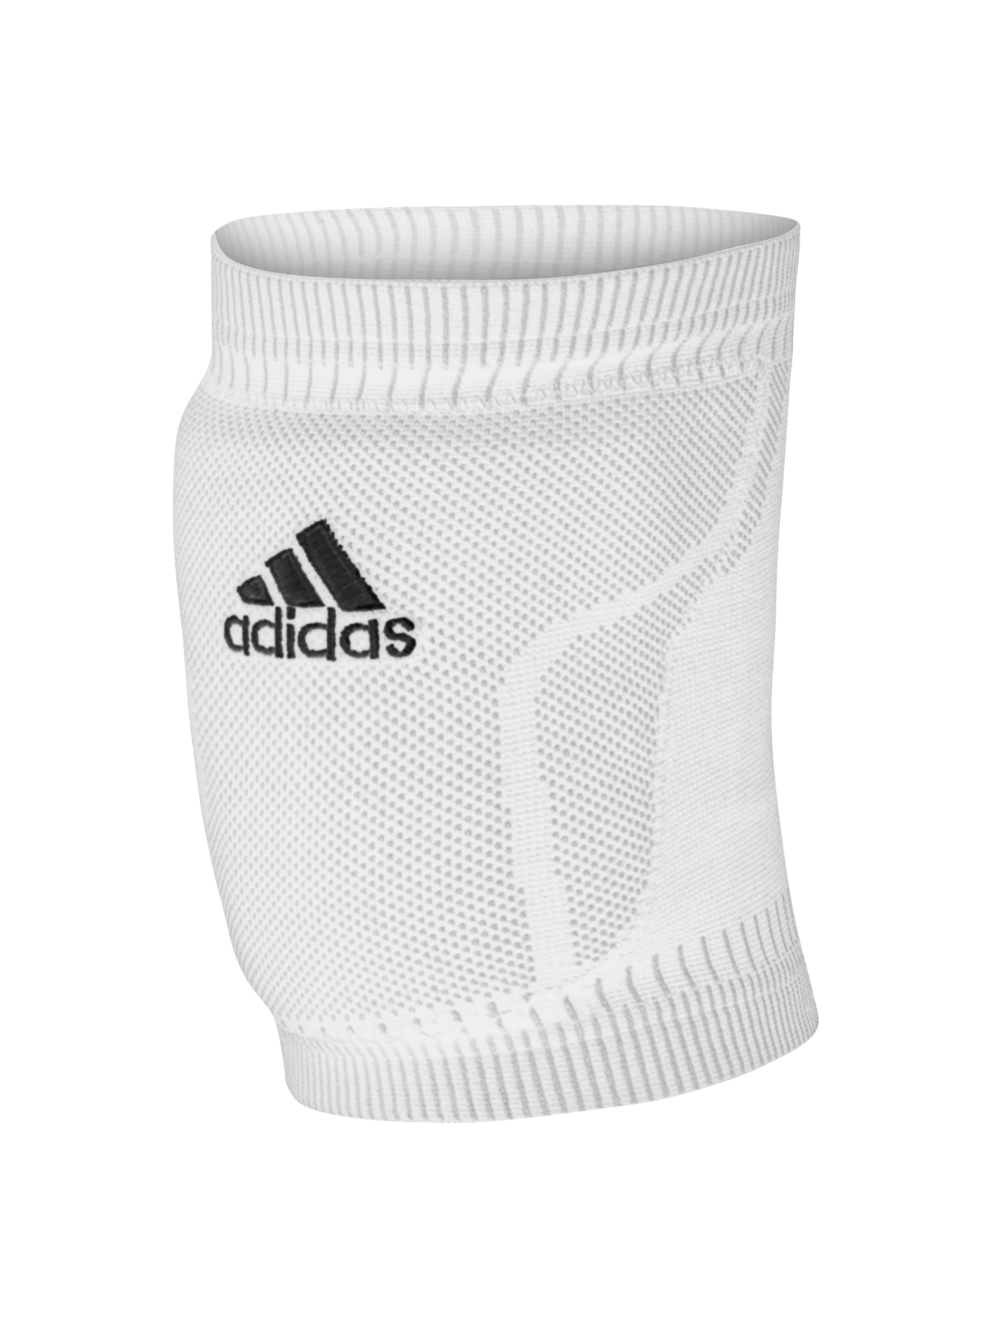 Adidas Primeknit Kneepads Midwest Volleyball Warehouse